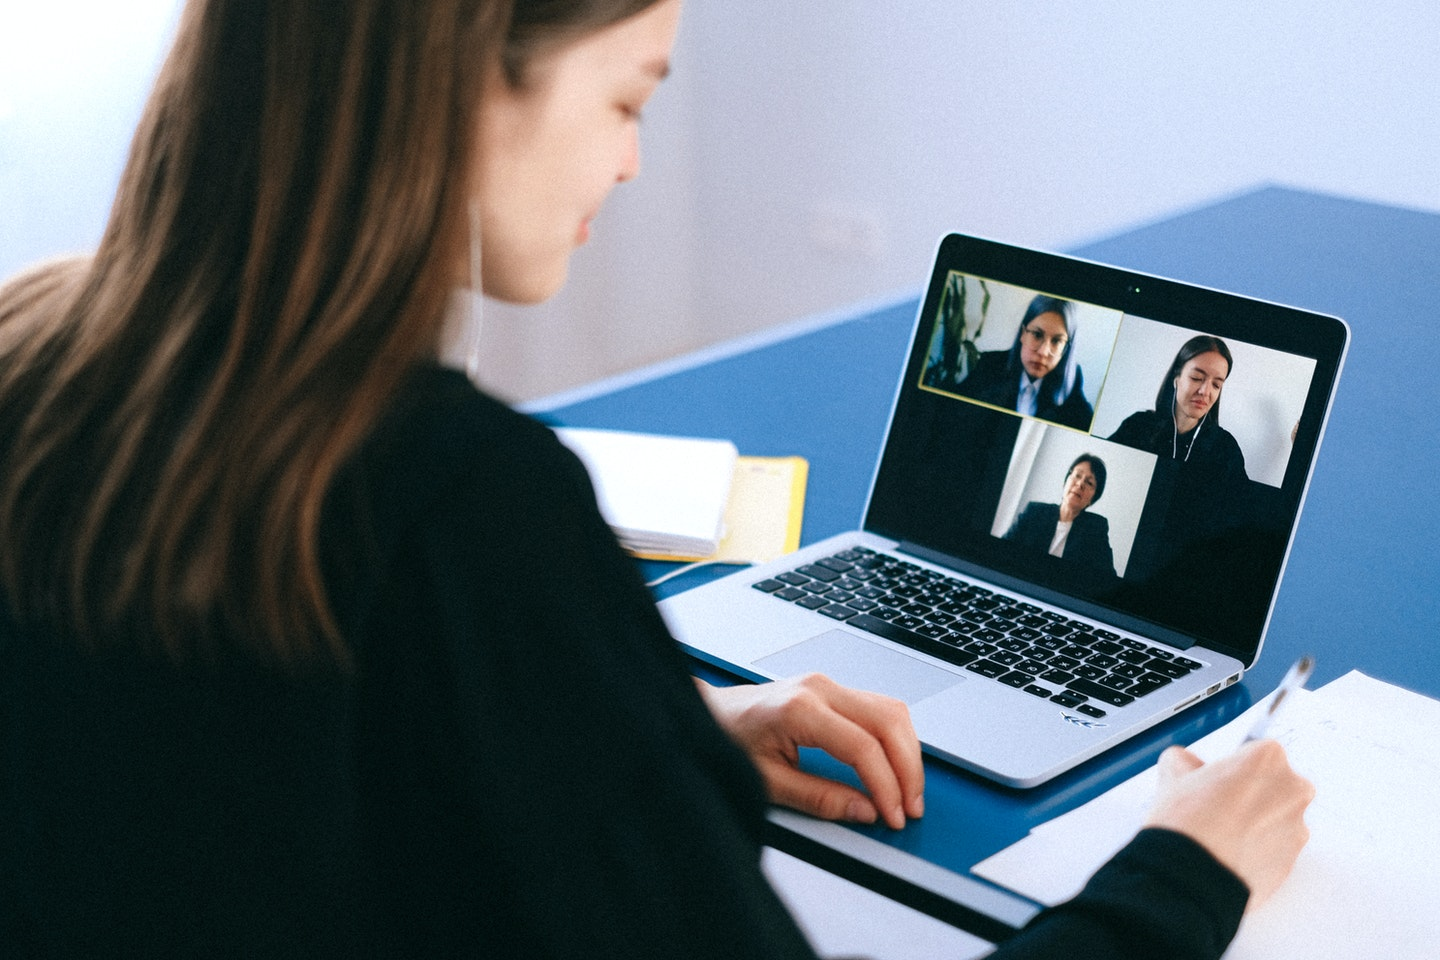 Job interview via Zoom video call with other colleagues